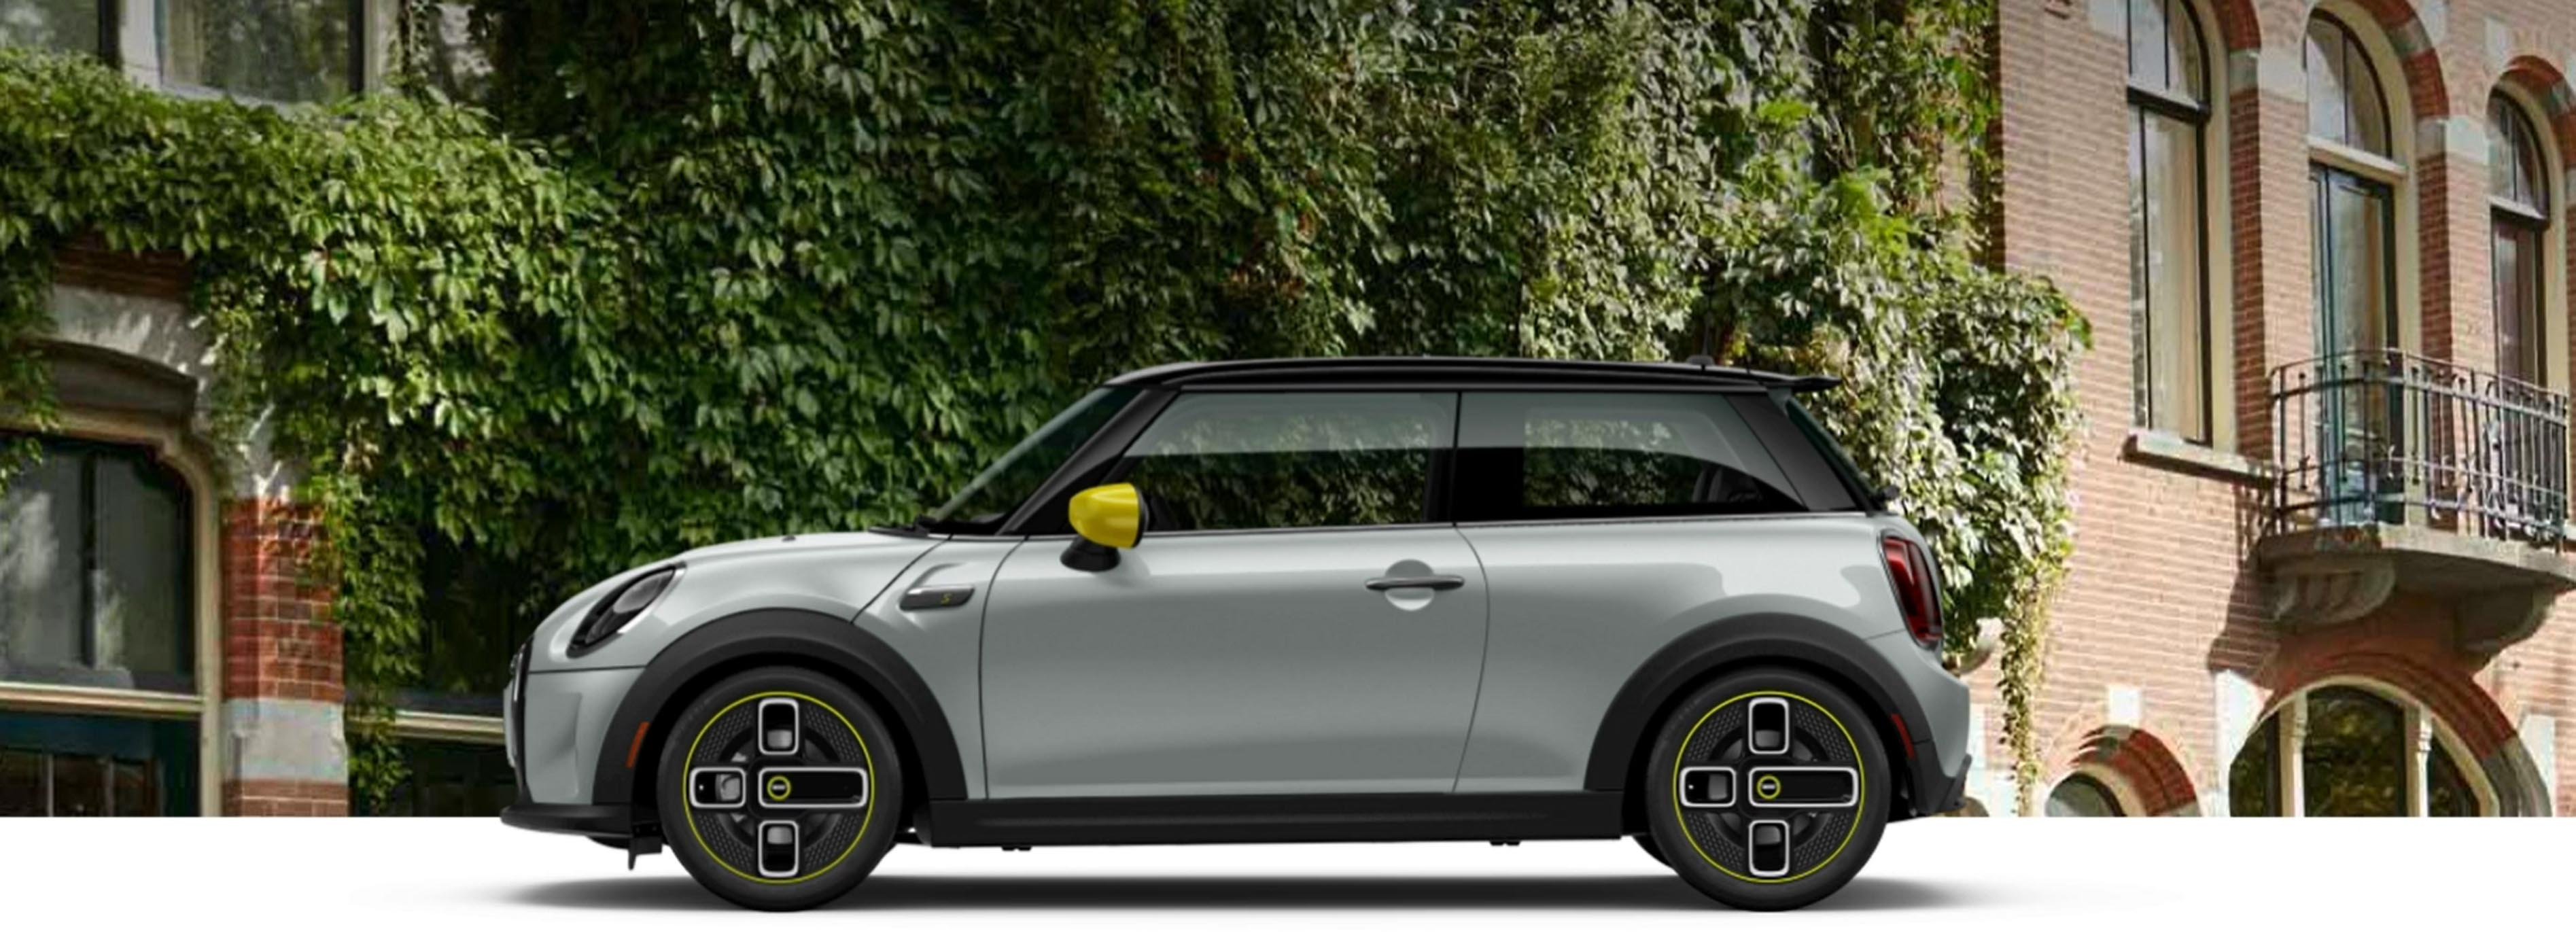 A 2022 MINI Cooper SE Hardtop 2 Door parked. in front of a brick building